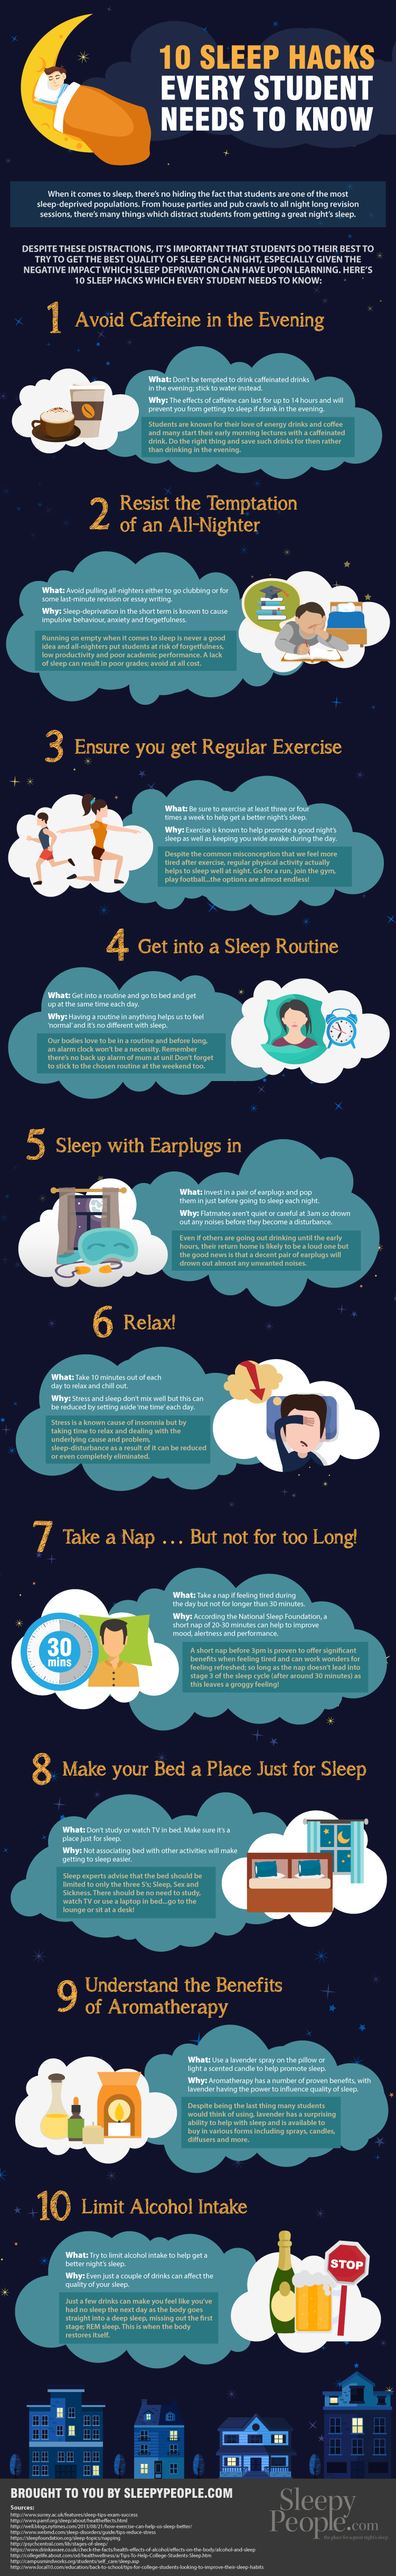 10 Student Sleep Hacks